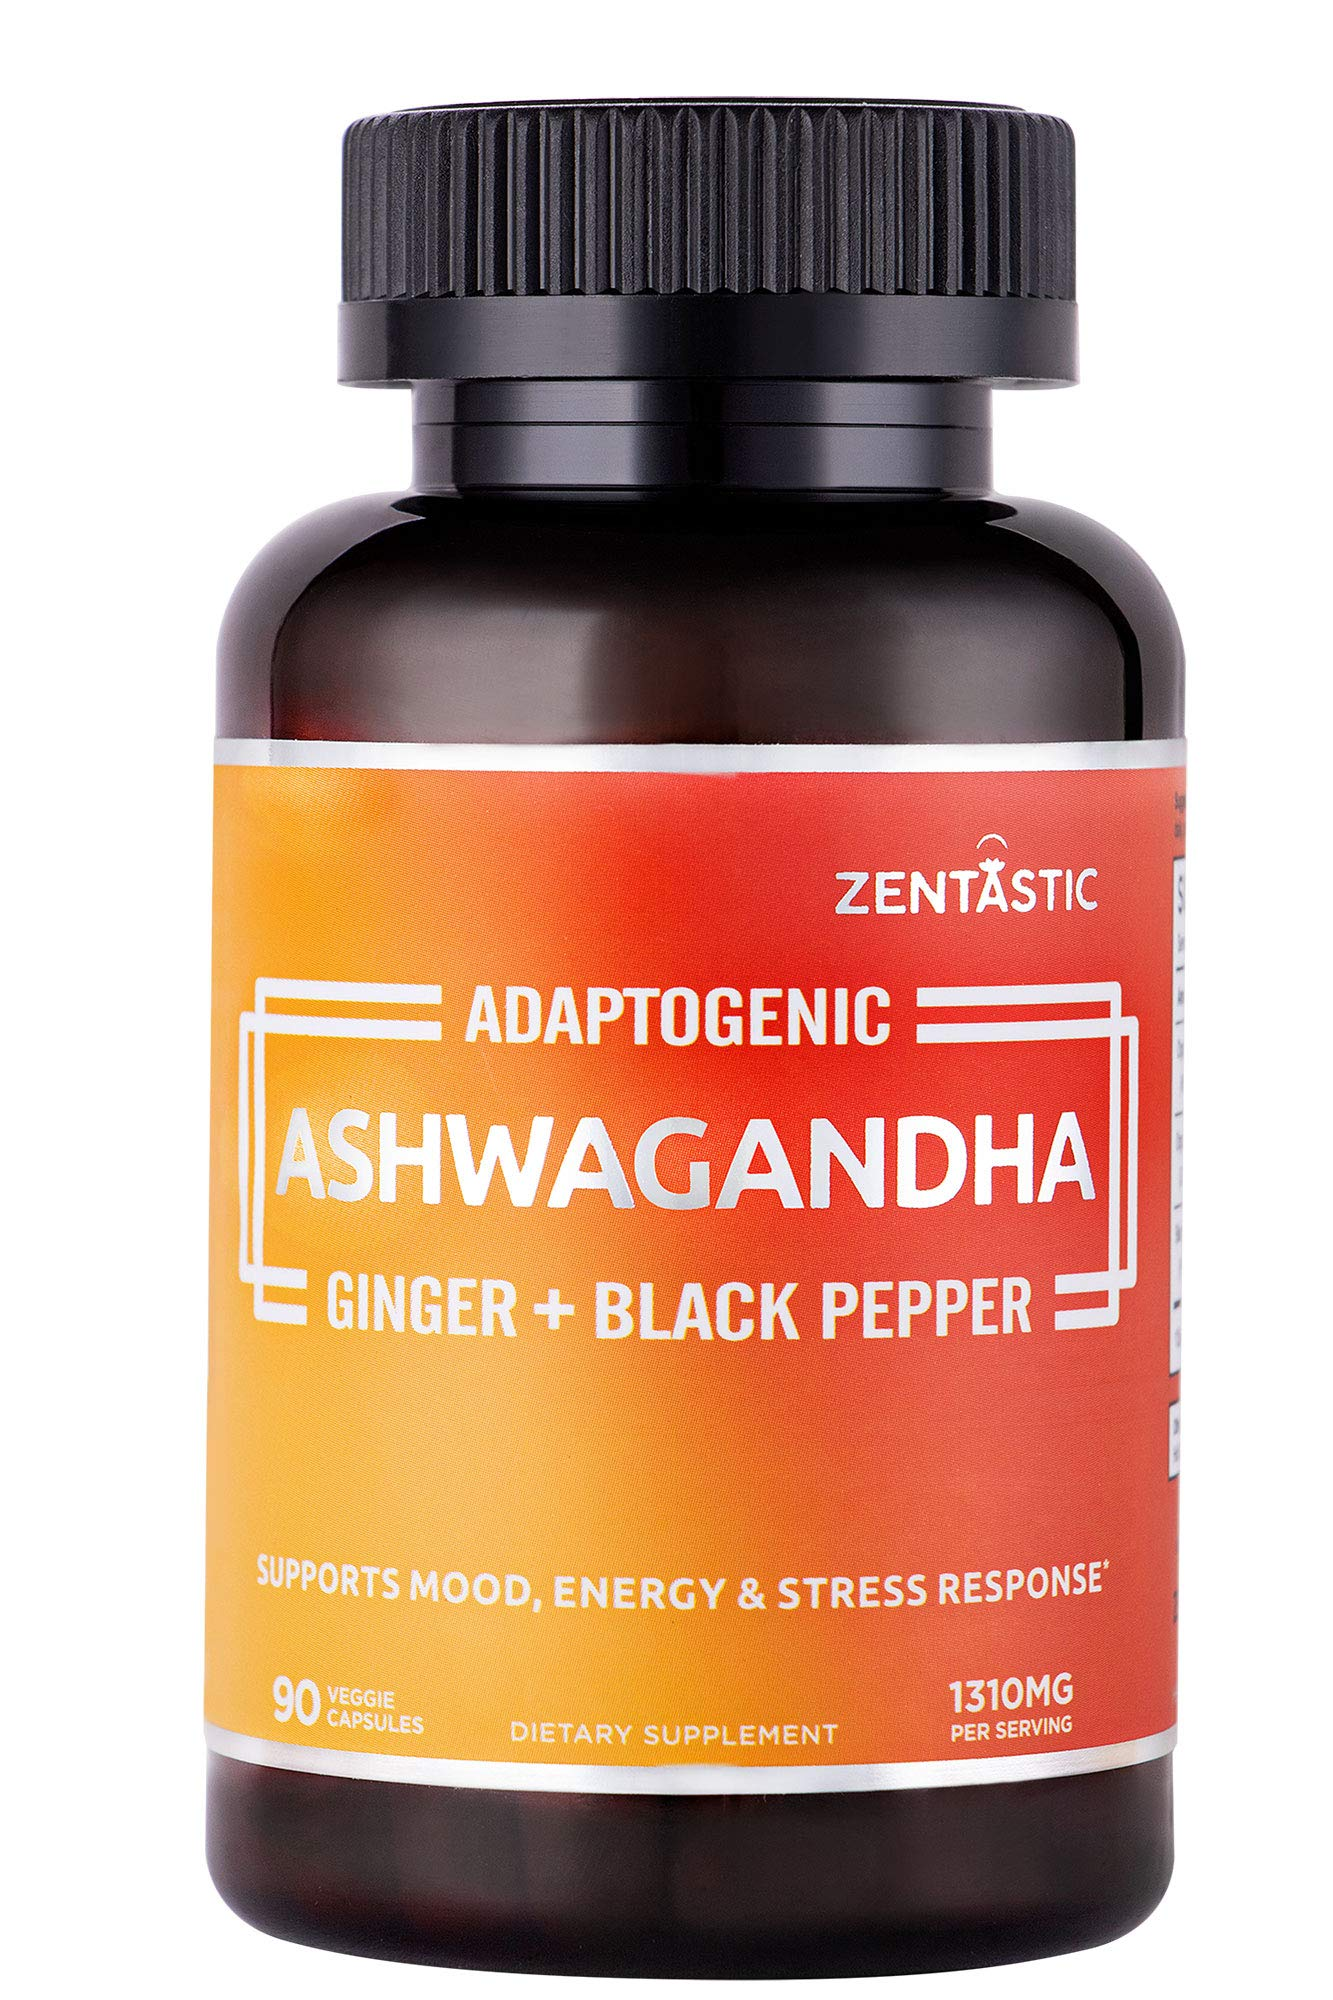 Zentastic Ashwagandha Capsules - Made with Organic Ashwagandha Root Powder, Organic Ginger, Black Pepper Extract - Natural Anxiety & Stress Relief, Mood & Energy Enhancer - 90 Veggie Capsules